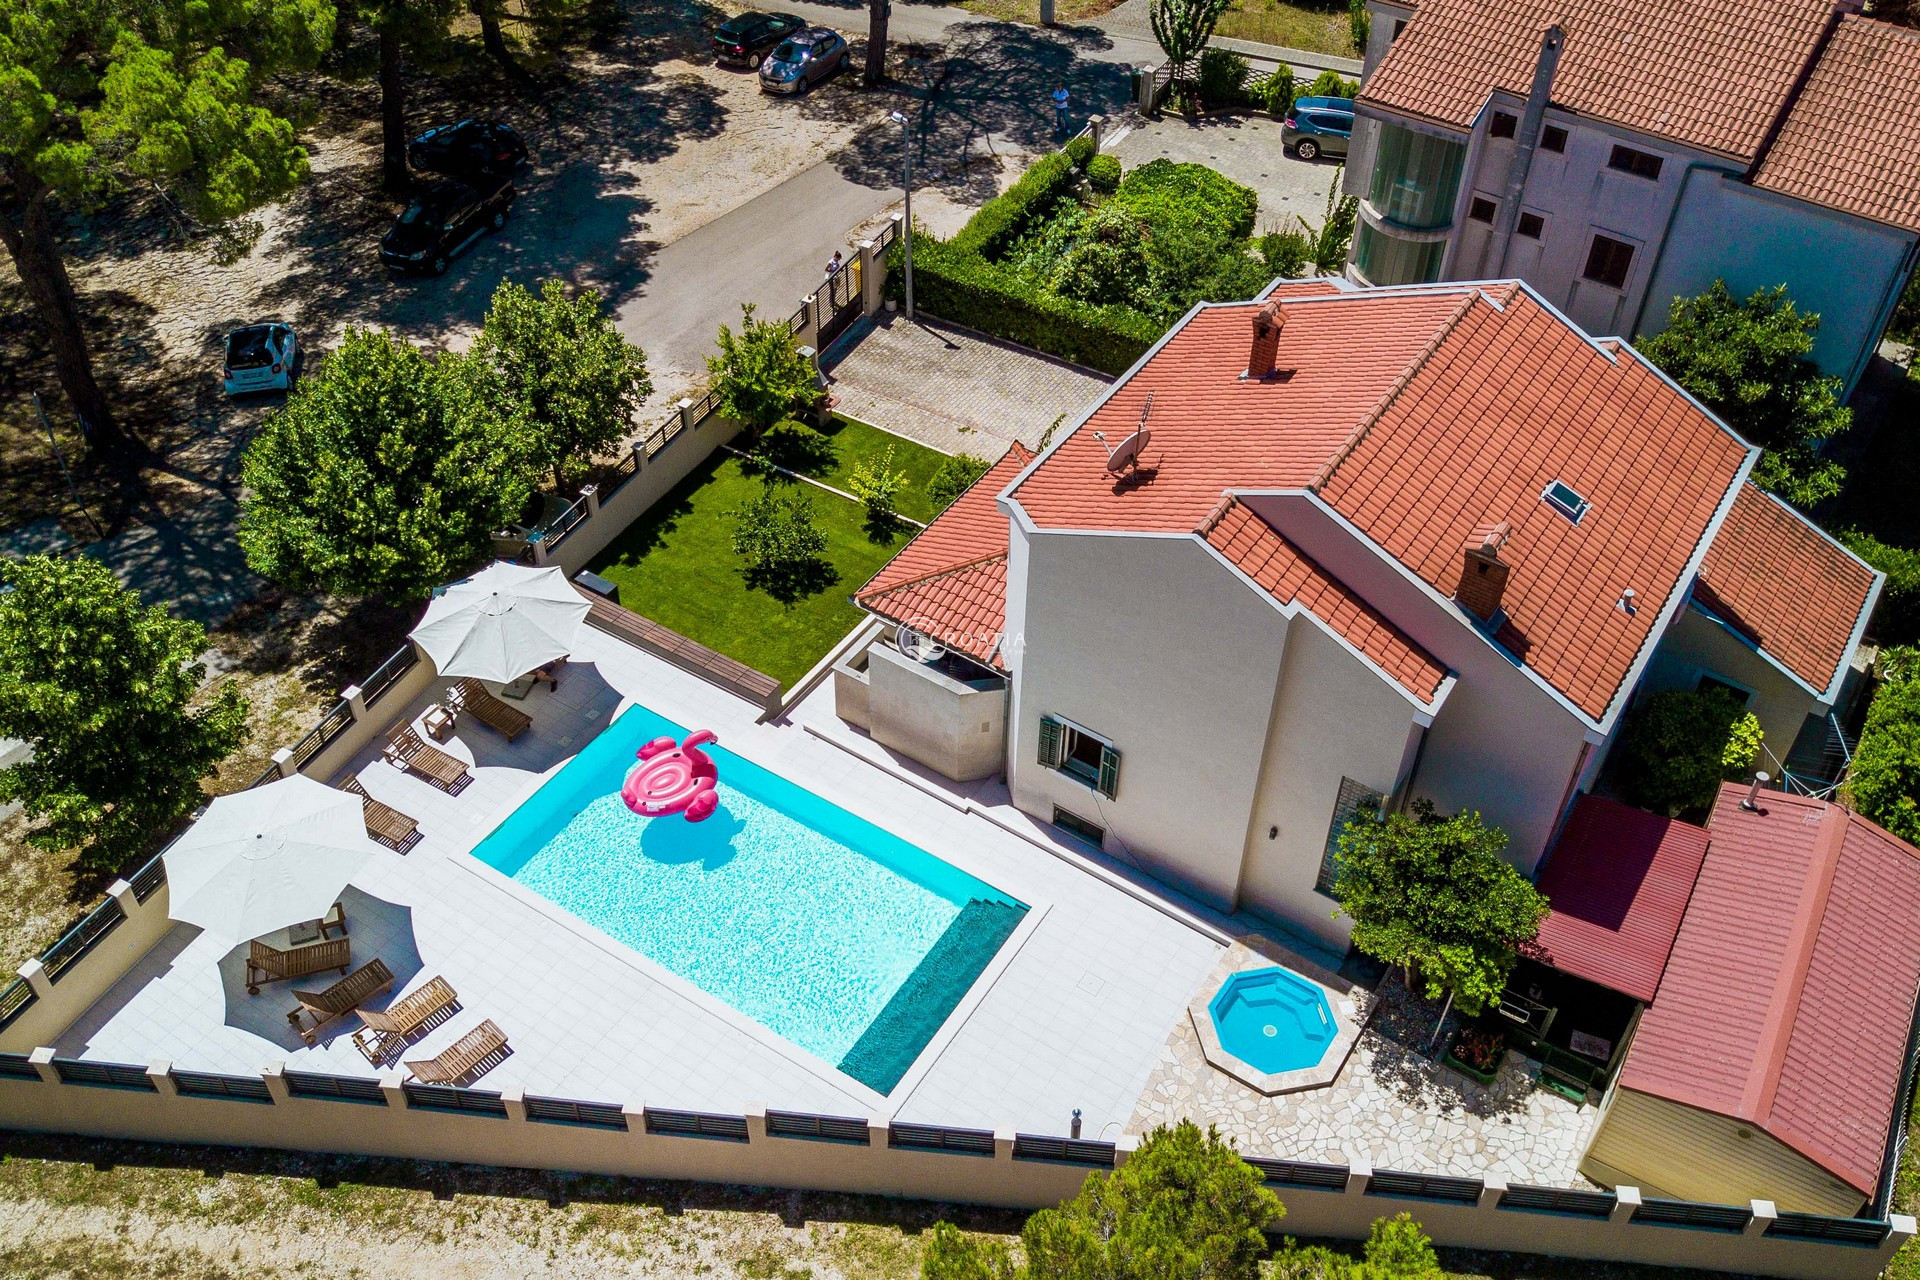 Holiday home with a pool for rent in Zadar